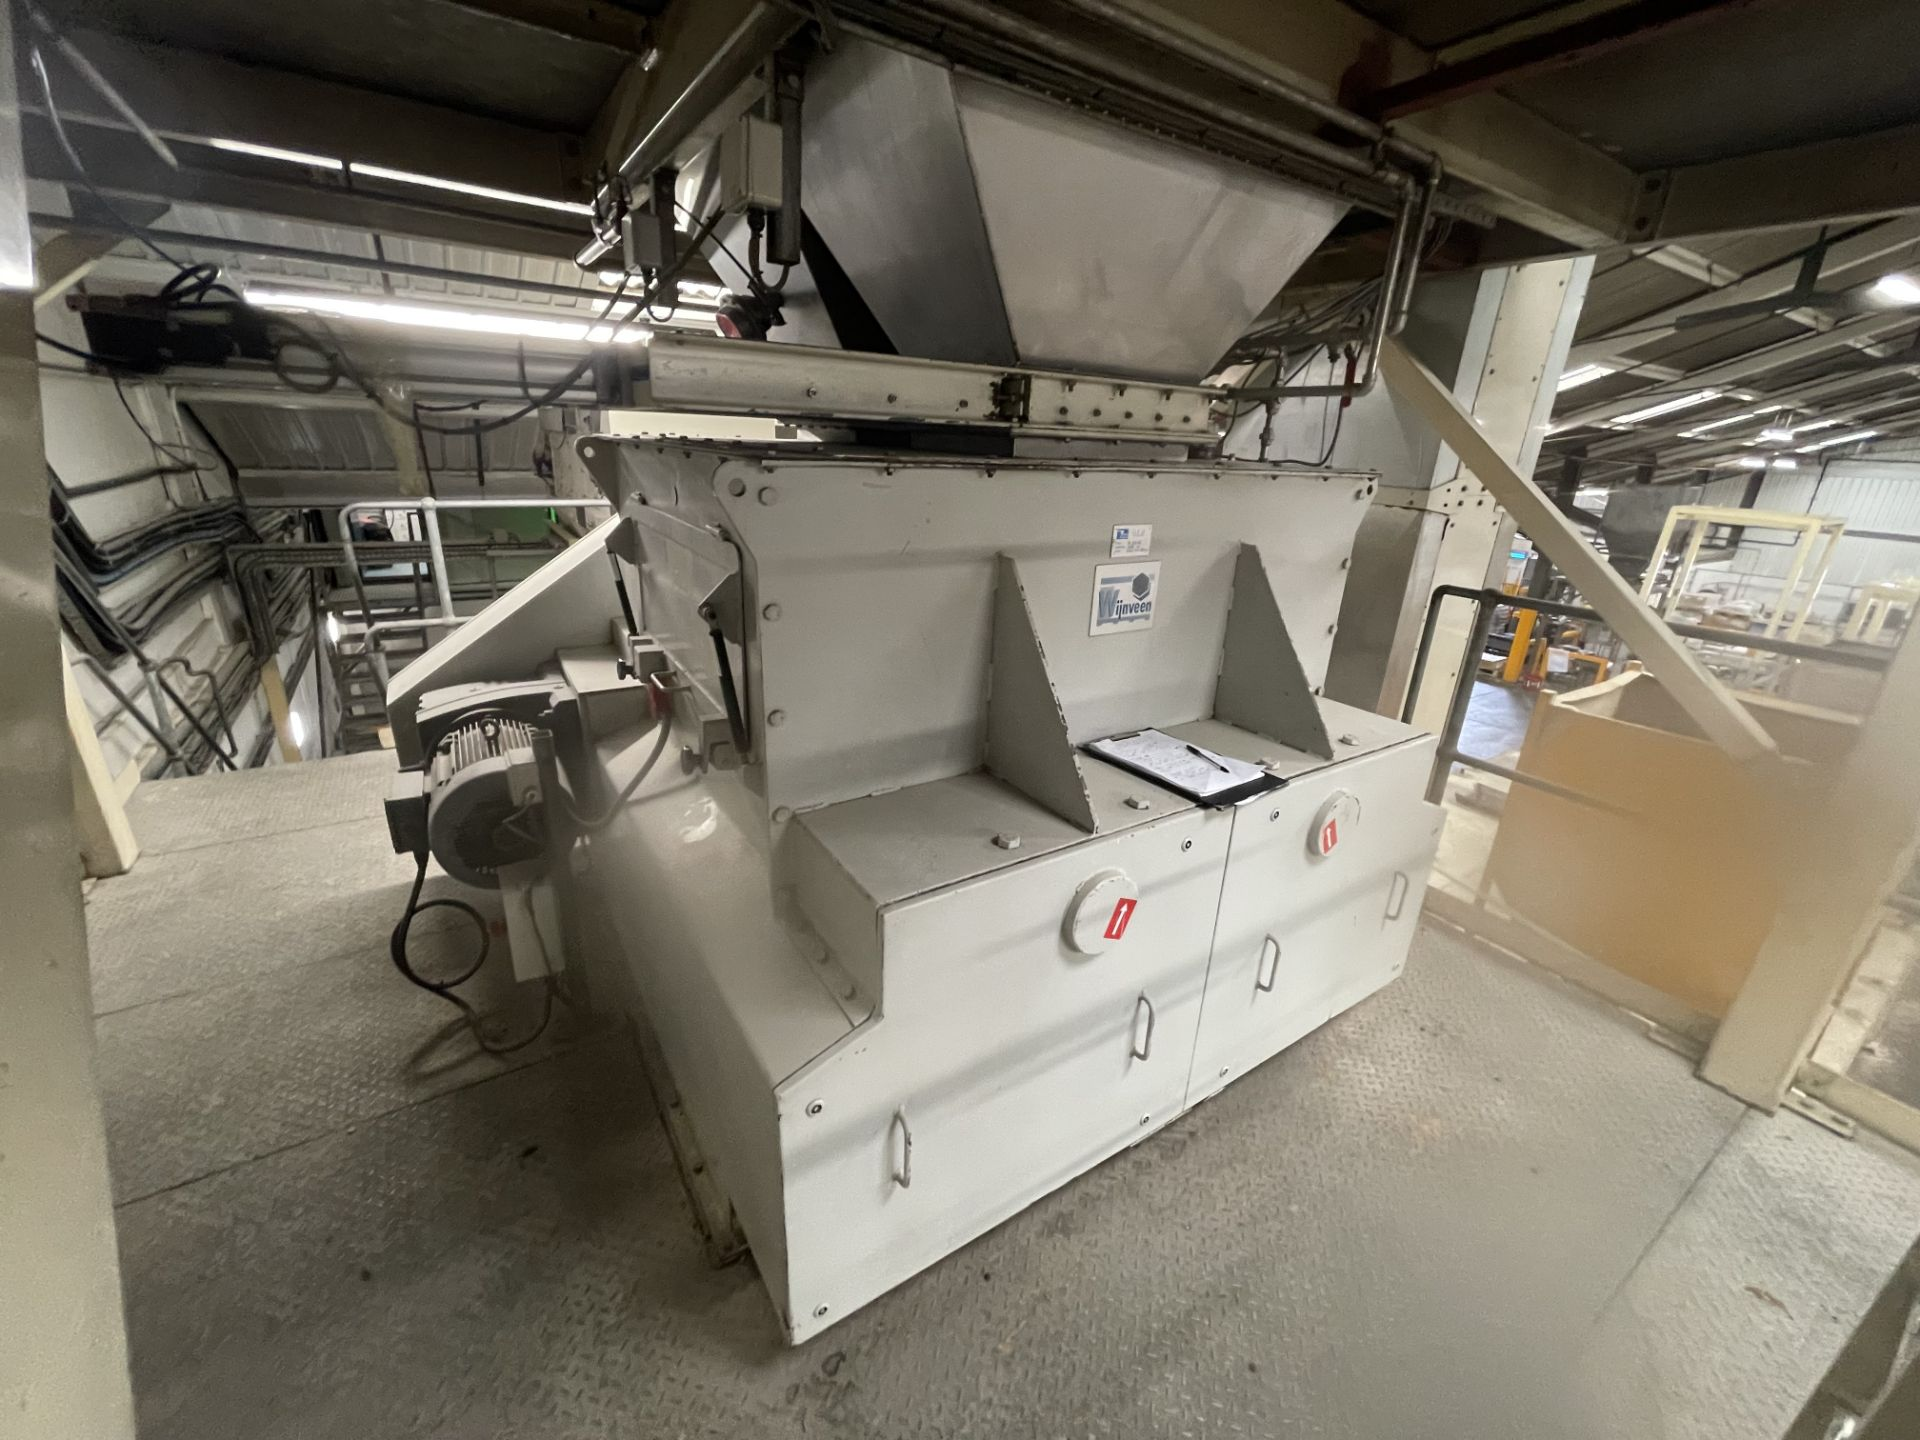 Pet Food Blending Line c/w Wynveen PM 750LH Stainless Steel Double Shaft Paddle Mixer - Image 5 of 63